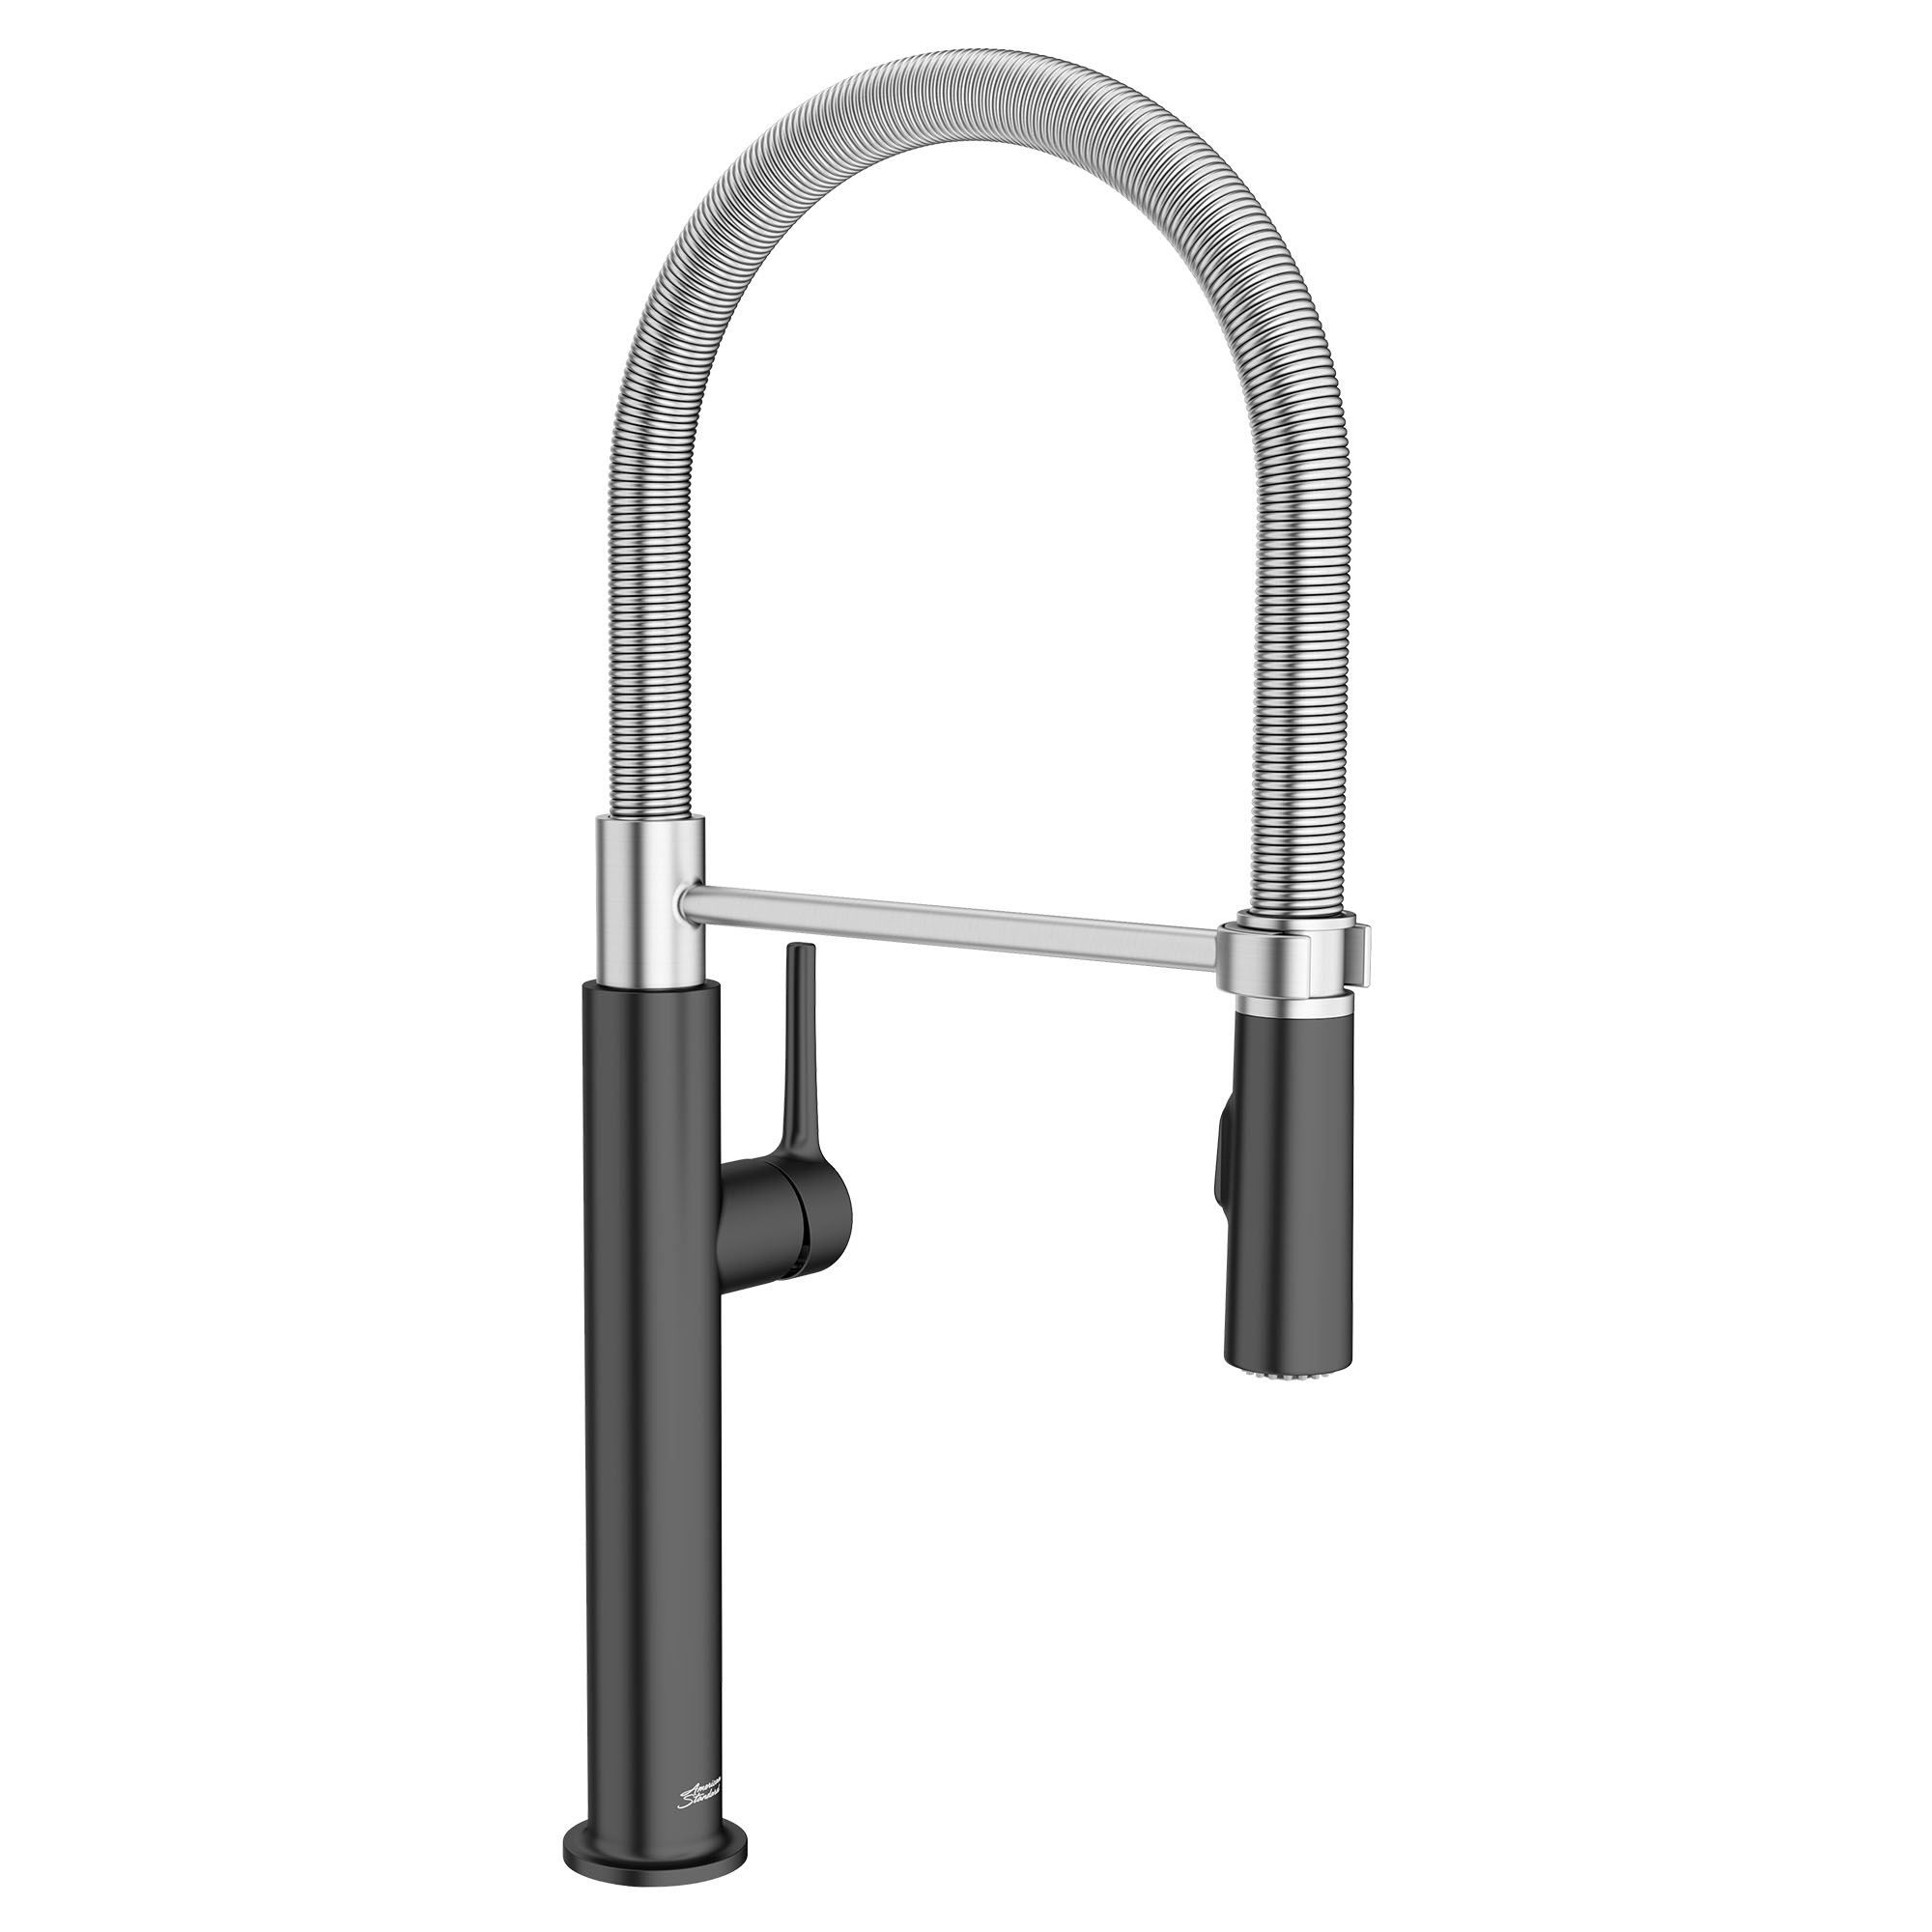 BLACK LEVER HANDLE FITS  SOME DRINKING FAUCETS TOUCH FLO MFG # 03-5-BLACK